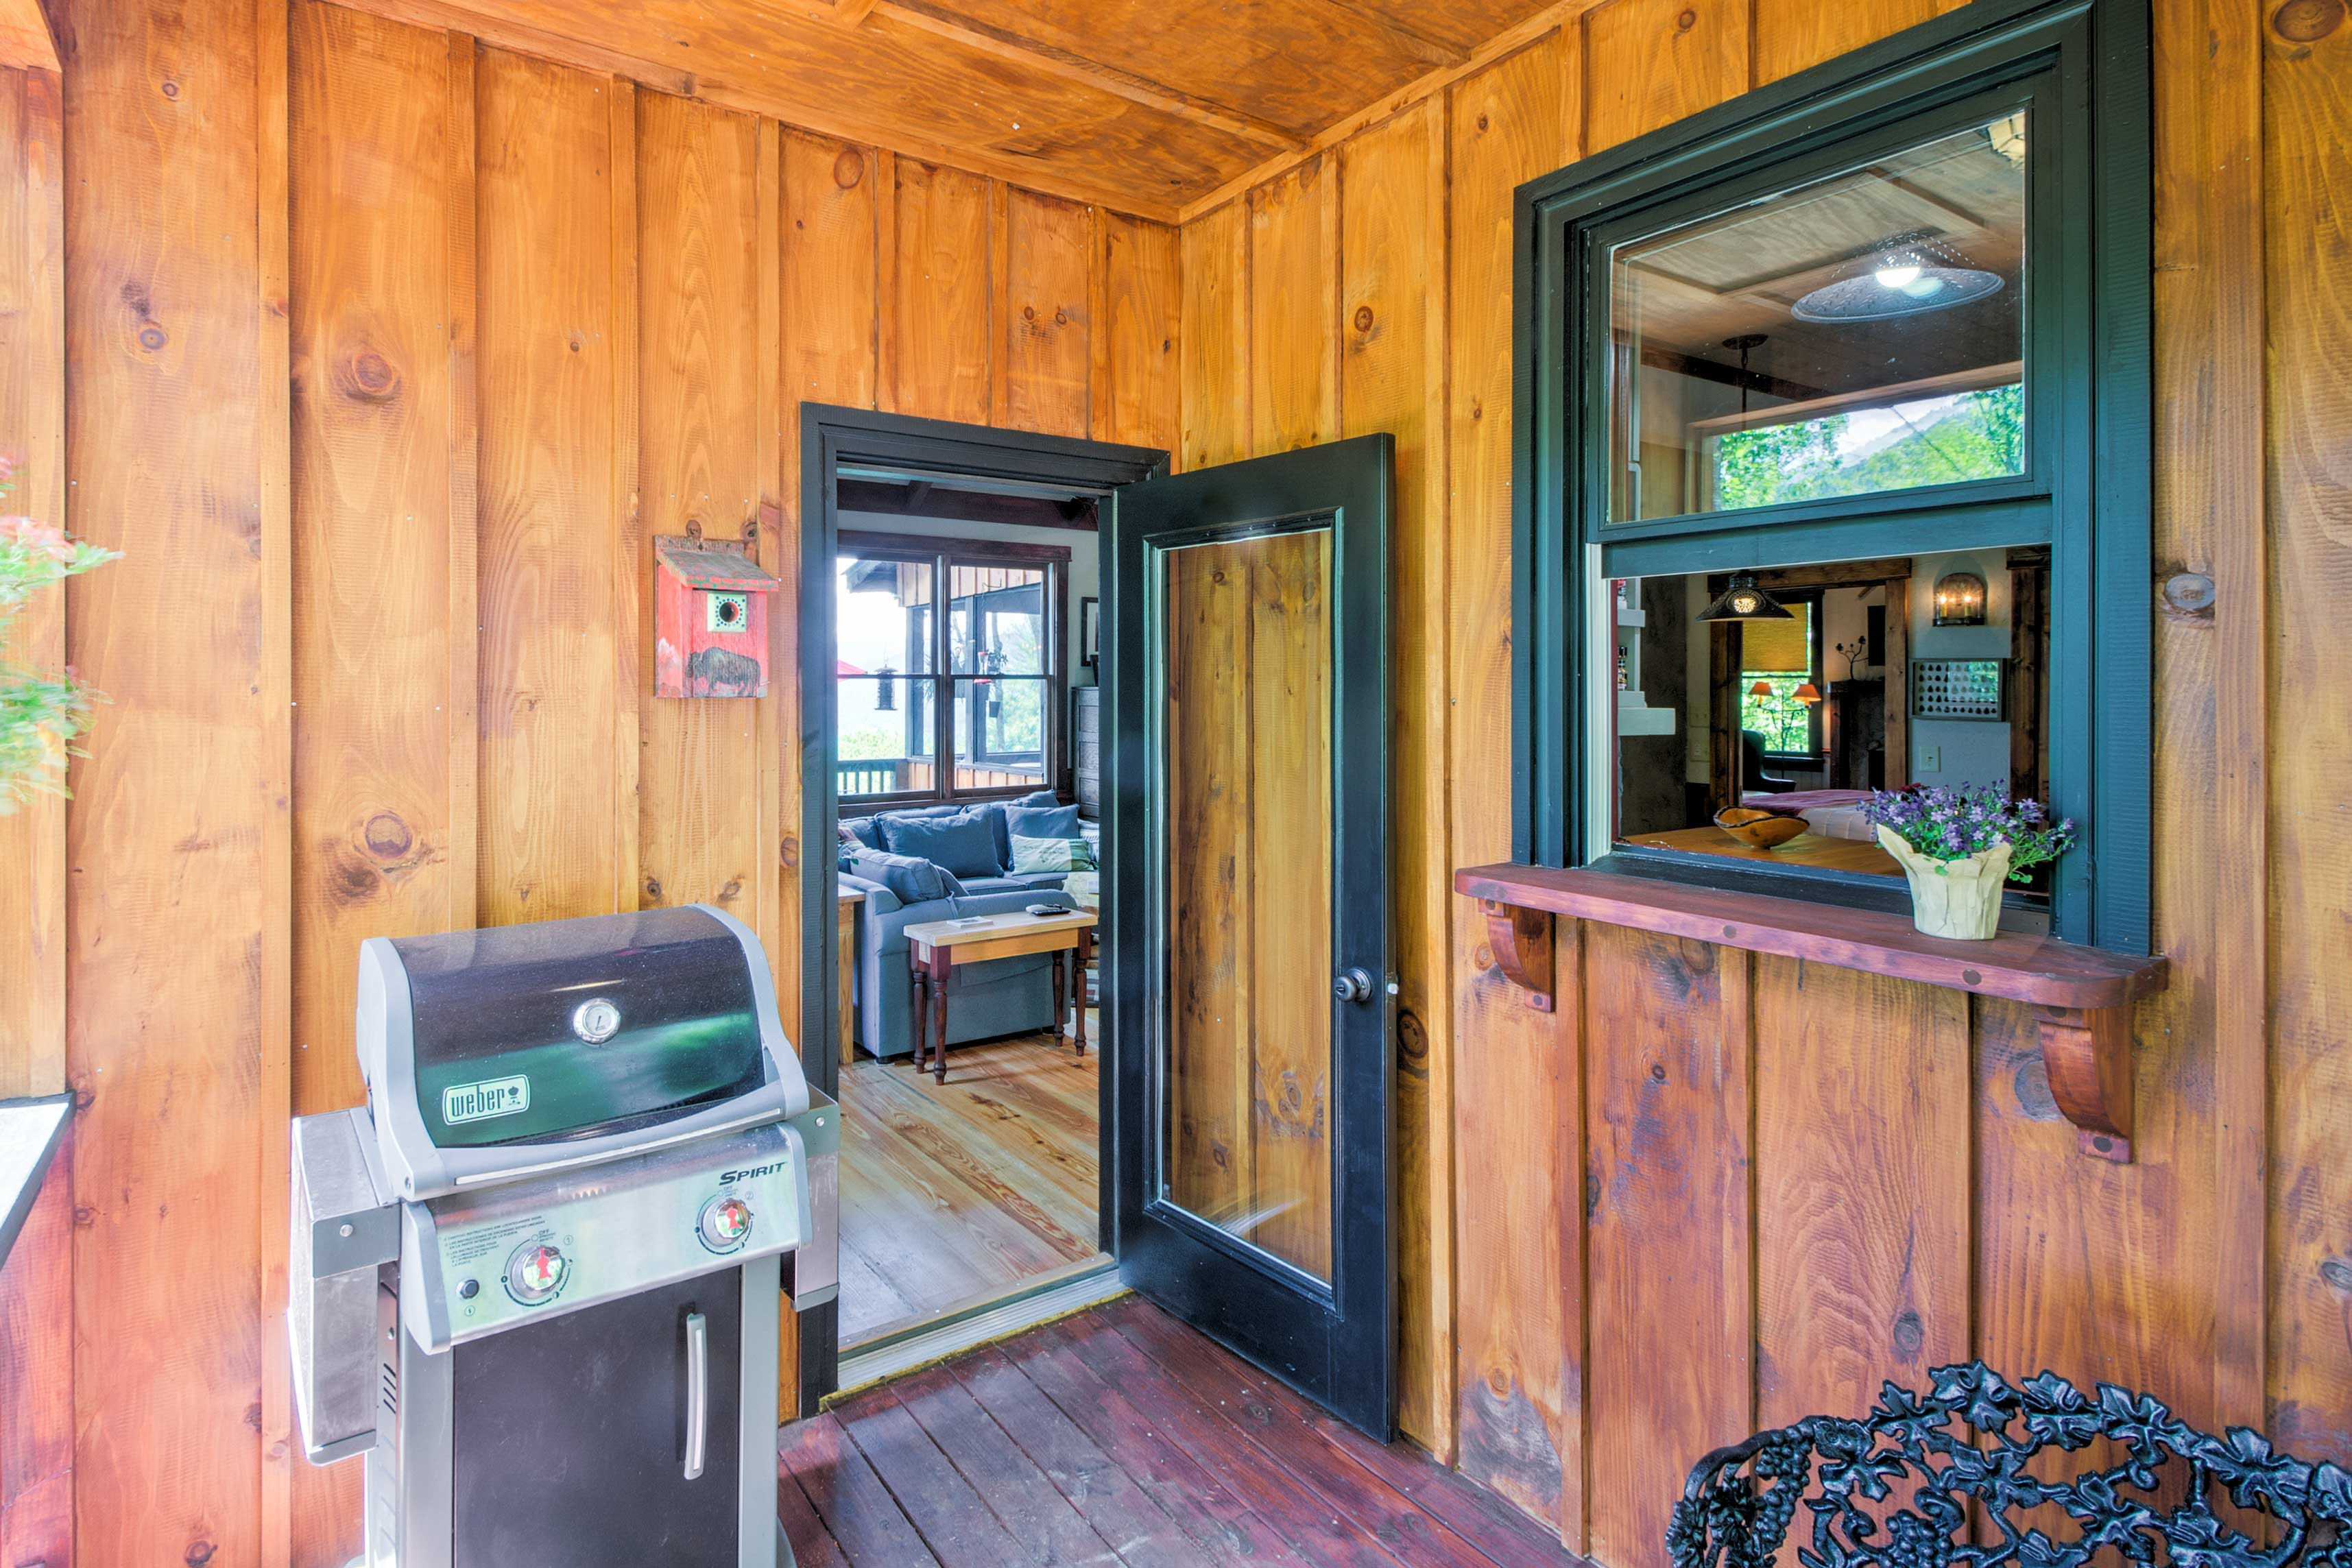 This covered cook porch off the kitchen features a pass-through window and gas grill.